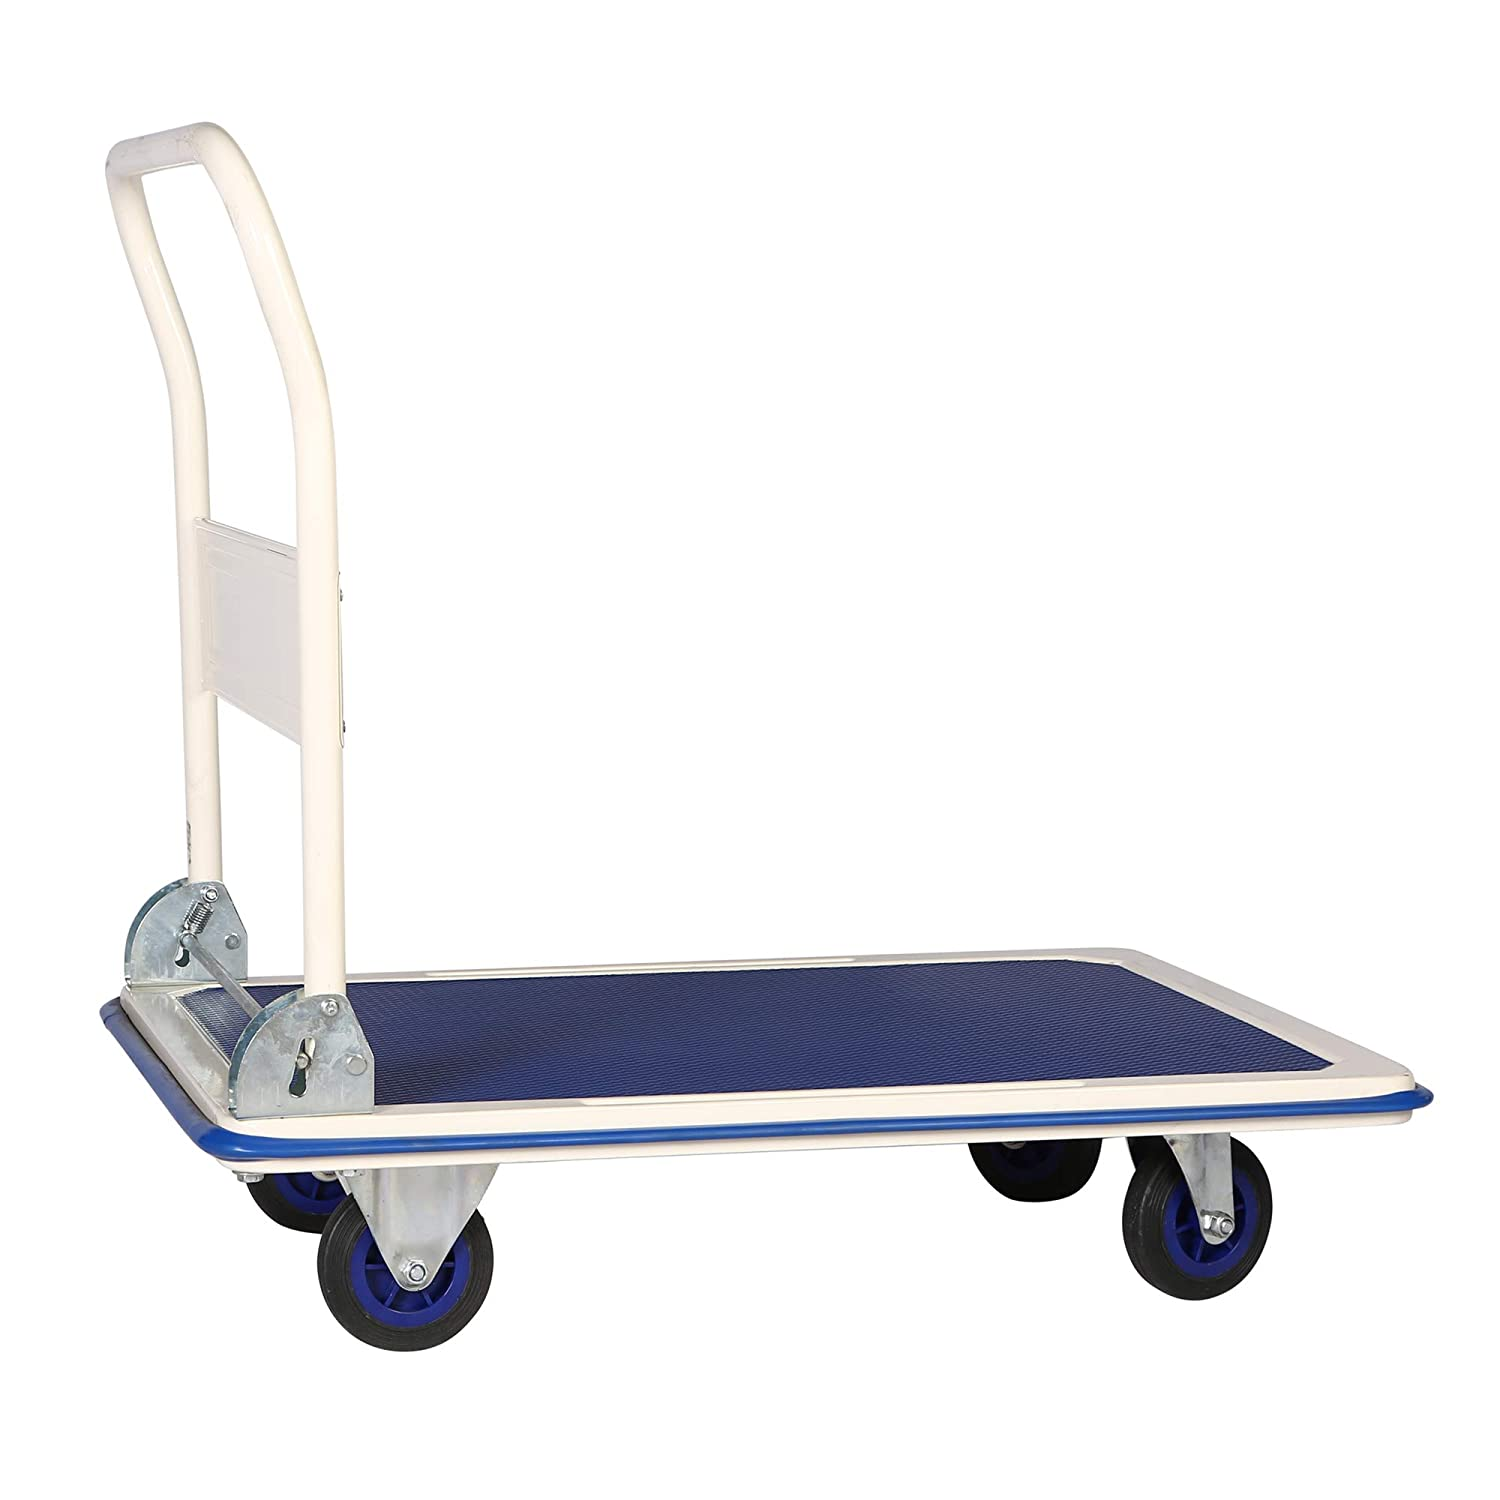 Platform Trolley 300 kg Parcel Trolley Brake Transport Trolley Foldable Unbekannt